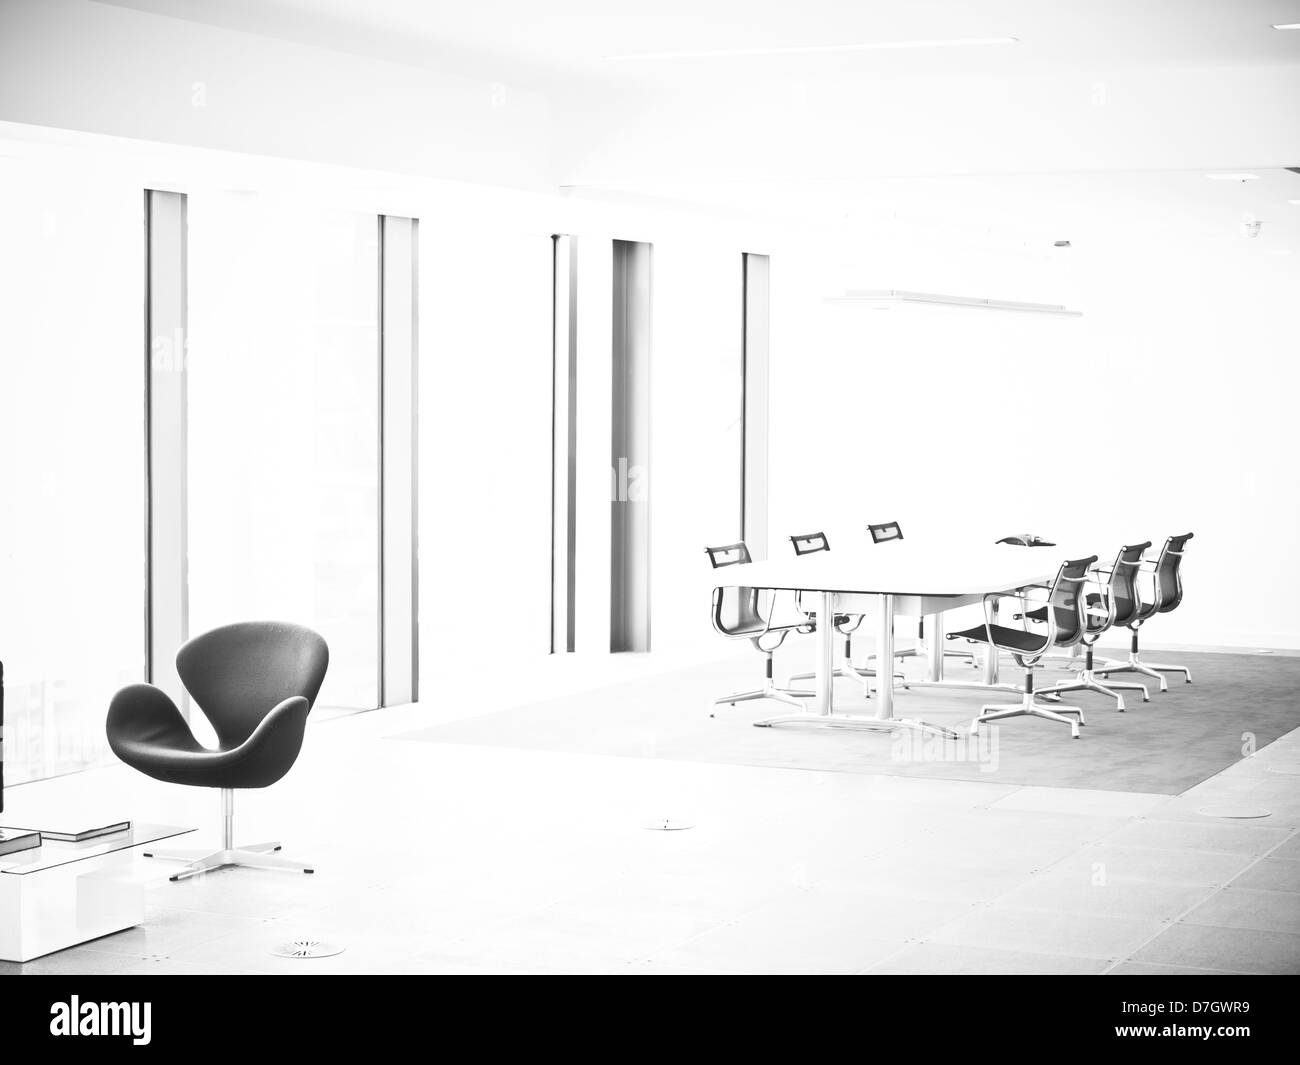 Stylised black and white architectural image of modern office environment. - Stock Image